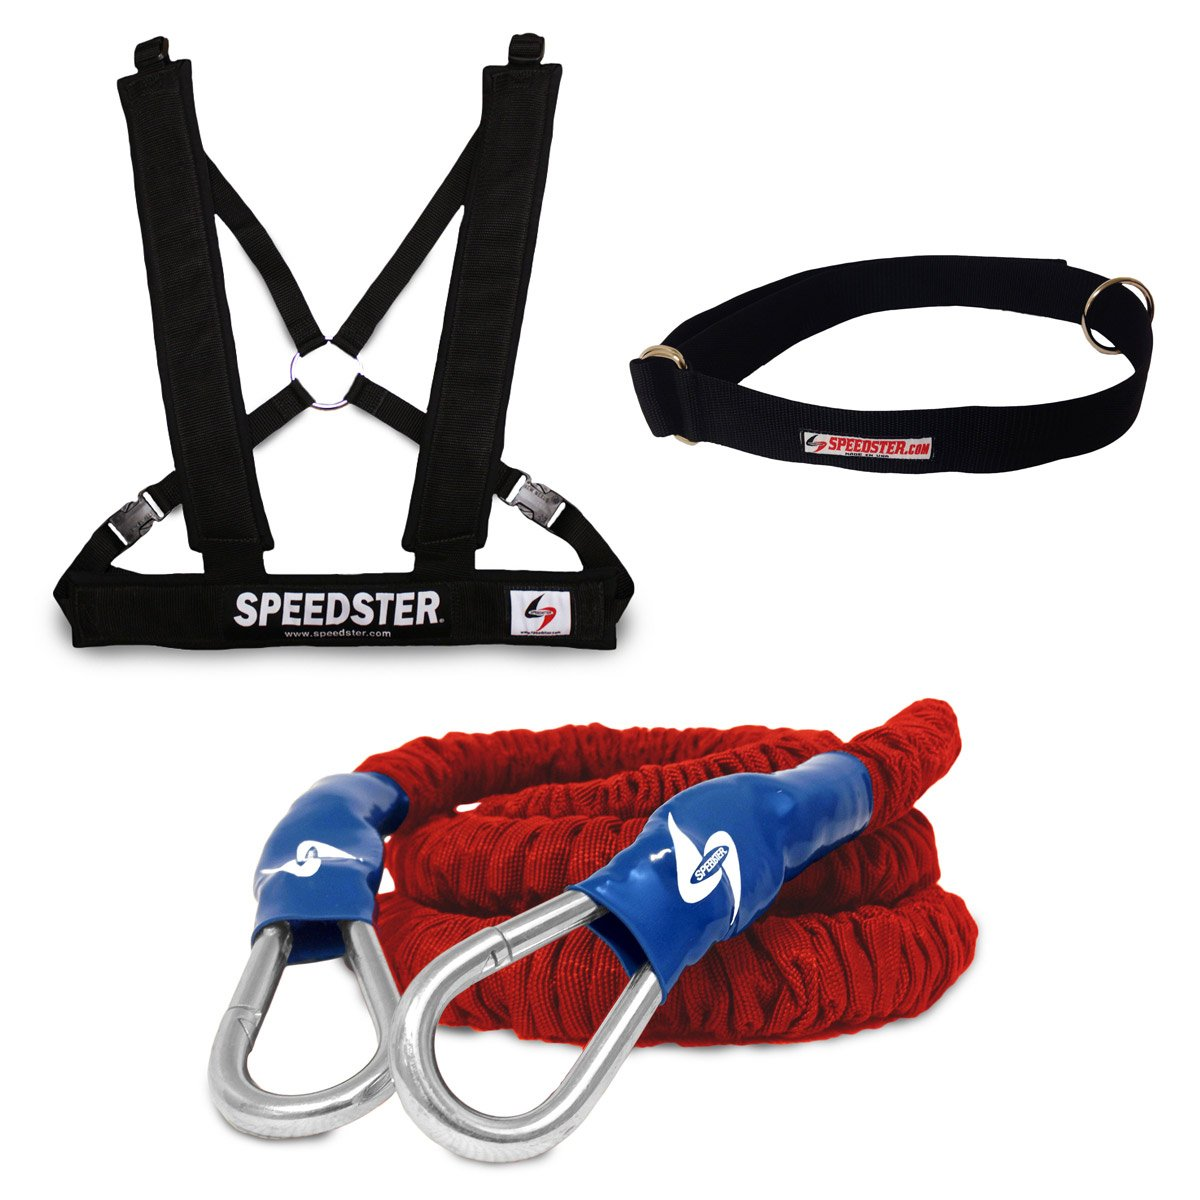 SPEEDSTER Rocket Single Overspeed Trainer HEAVY RESISTANCE 30' COVERED CORD WITH PADDED SHOULDER HARNESS AND WAIST BELT